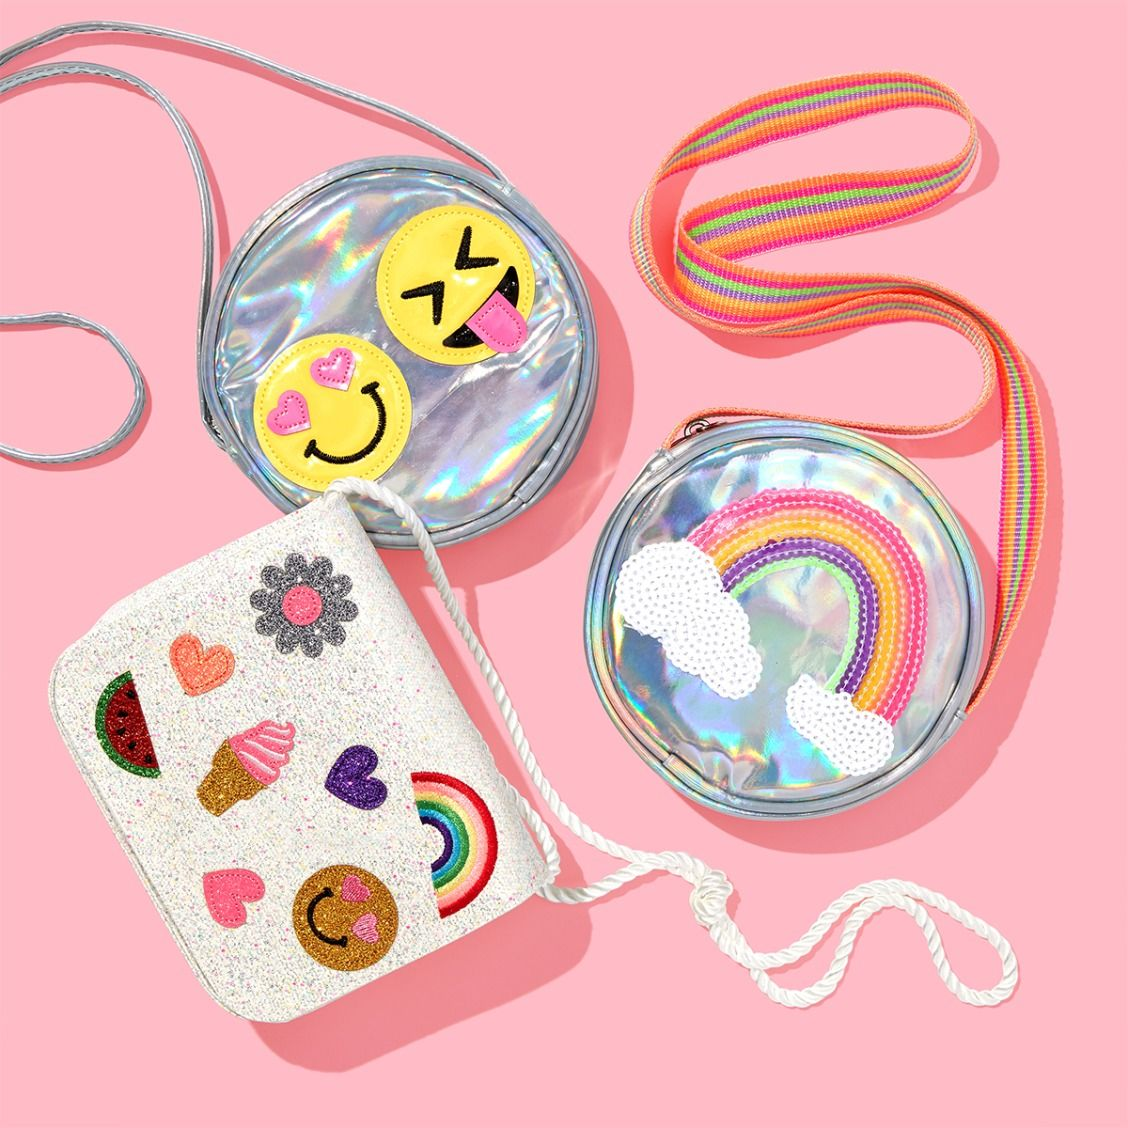 46f7c4105268 Girls' fashion | Kids' accessories | Purse | Emoji patches | Sequin |  Rainbow